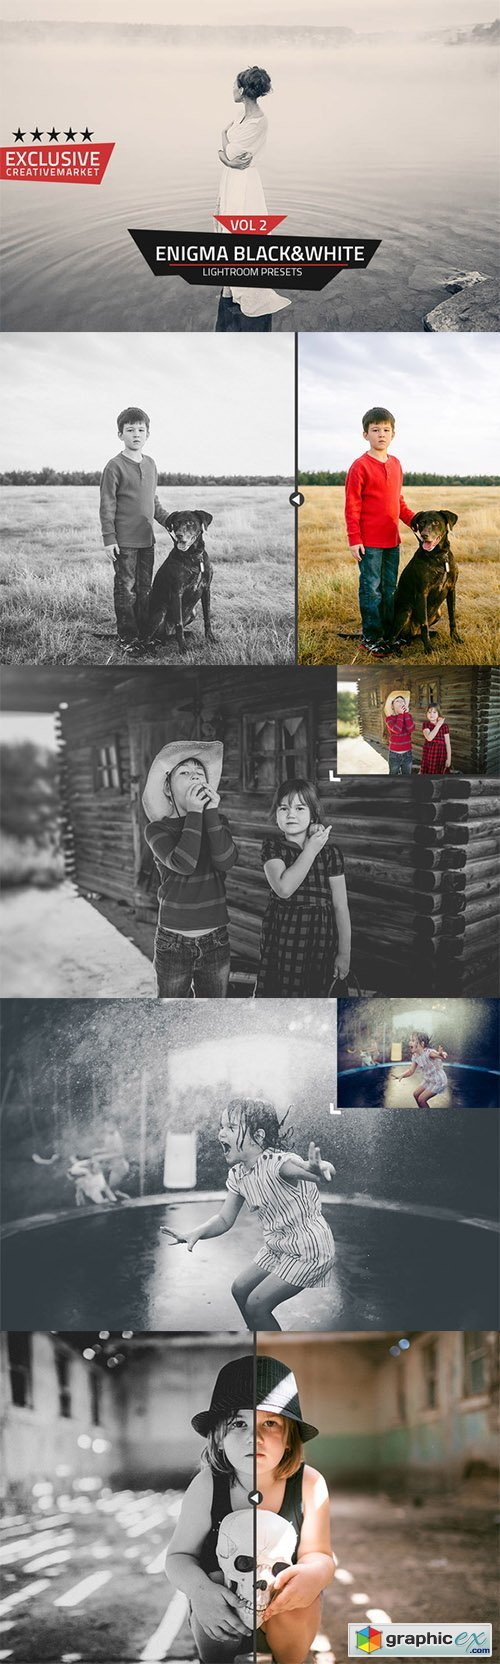 Enigma B&W Lightroom Presets Vol 2